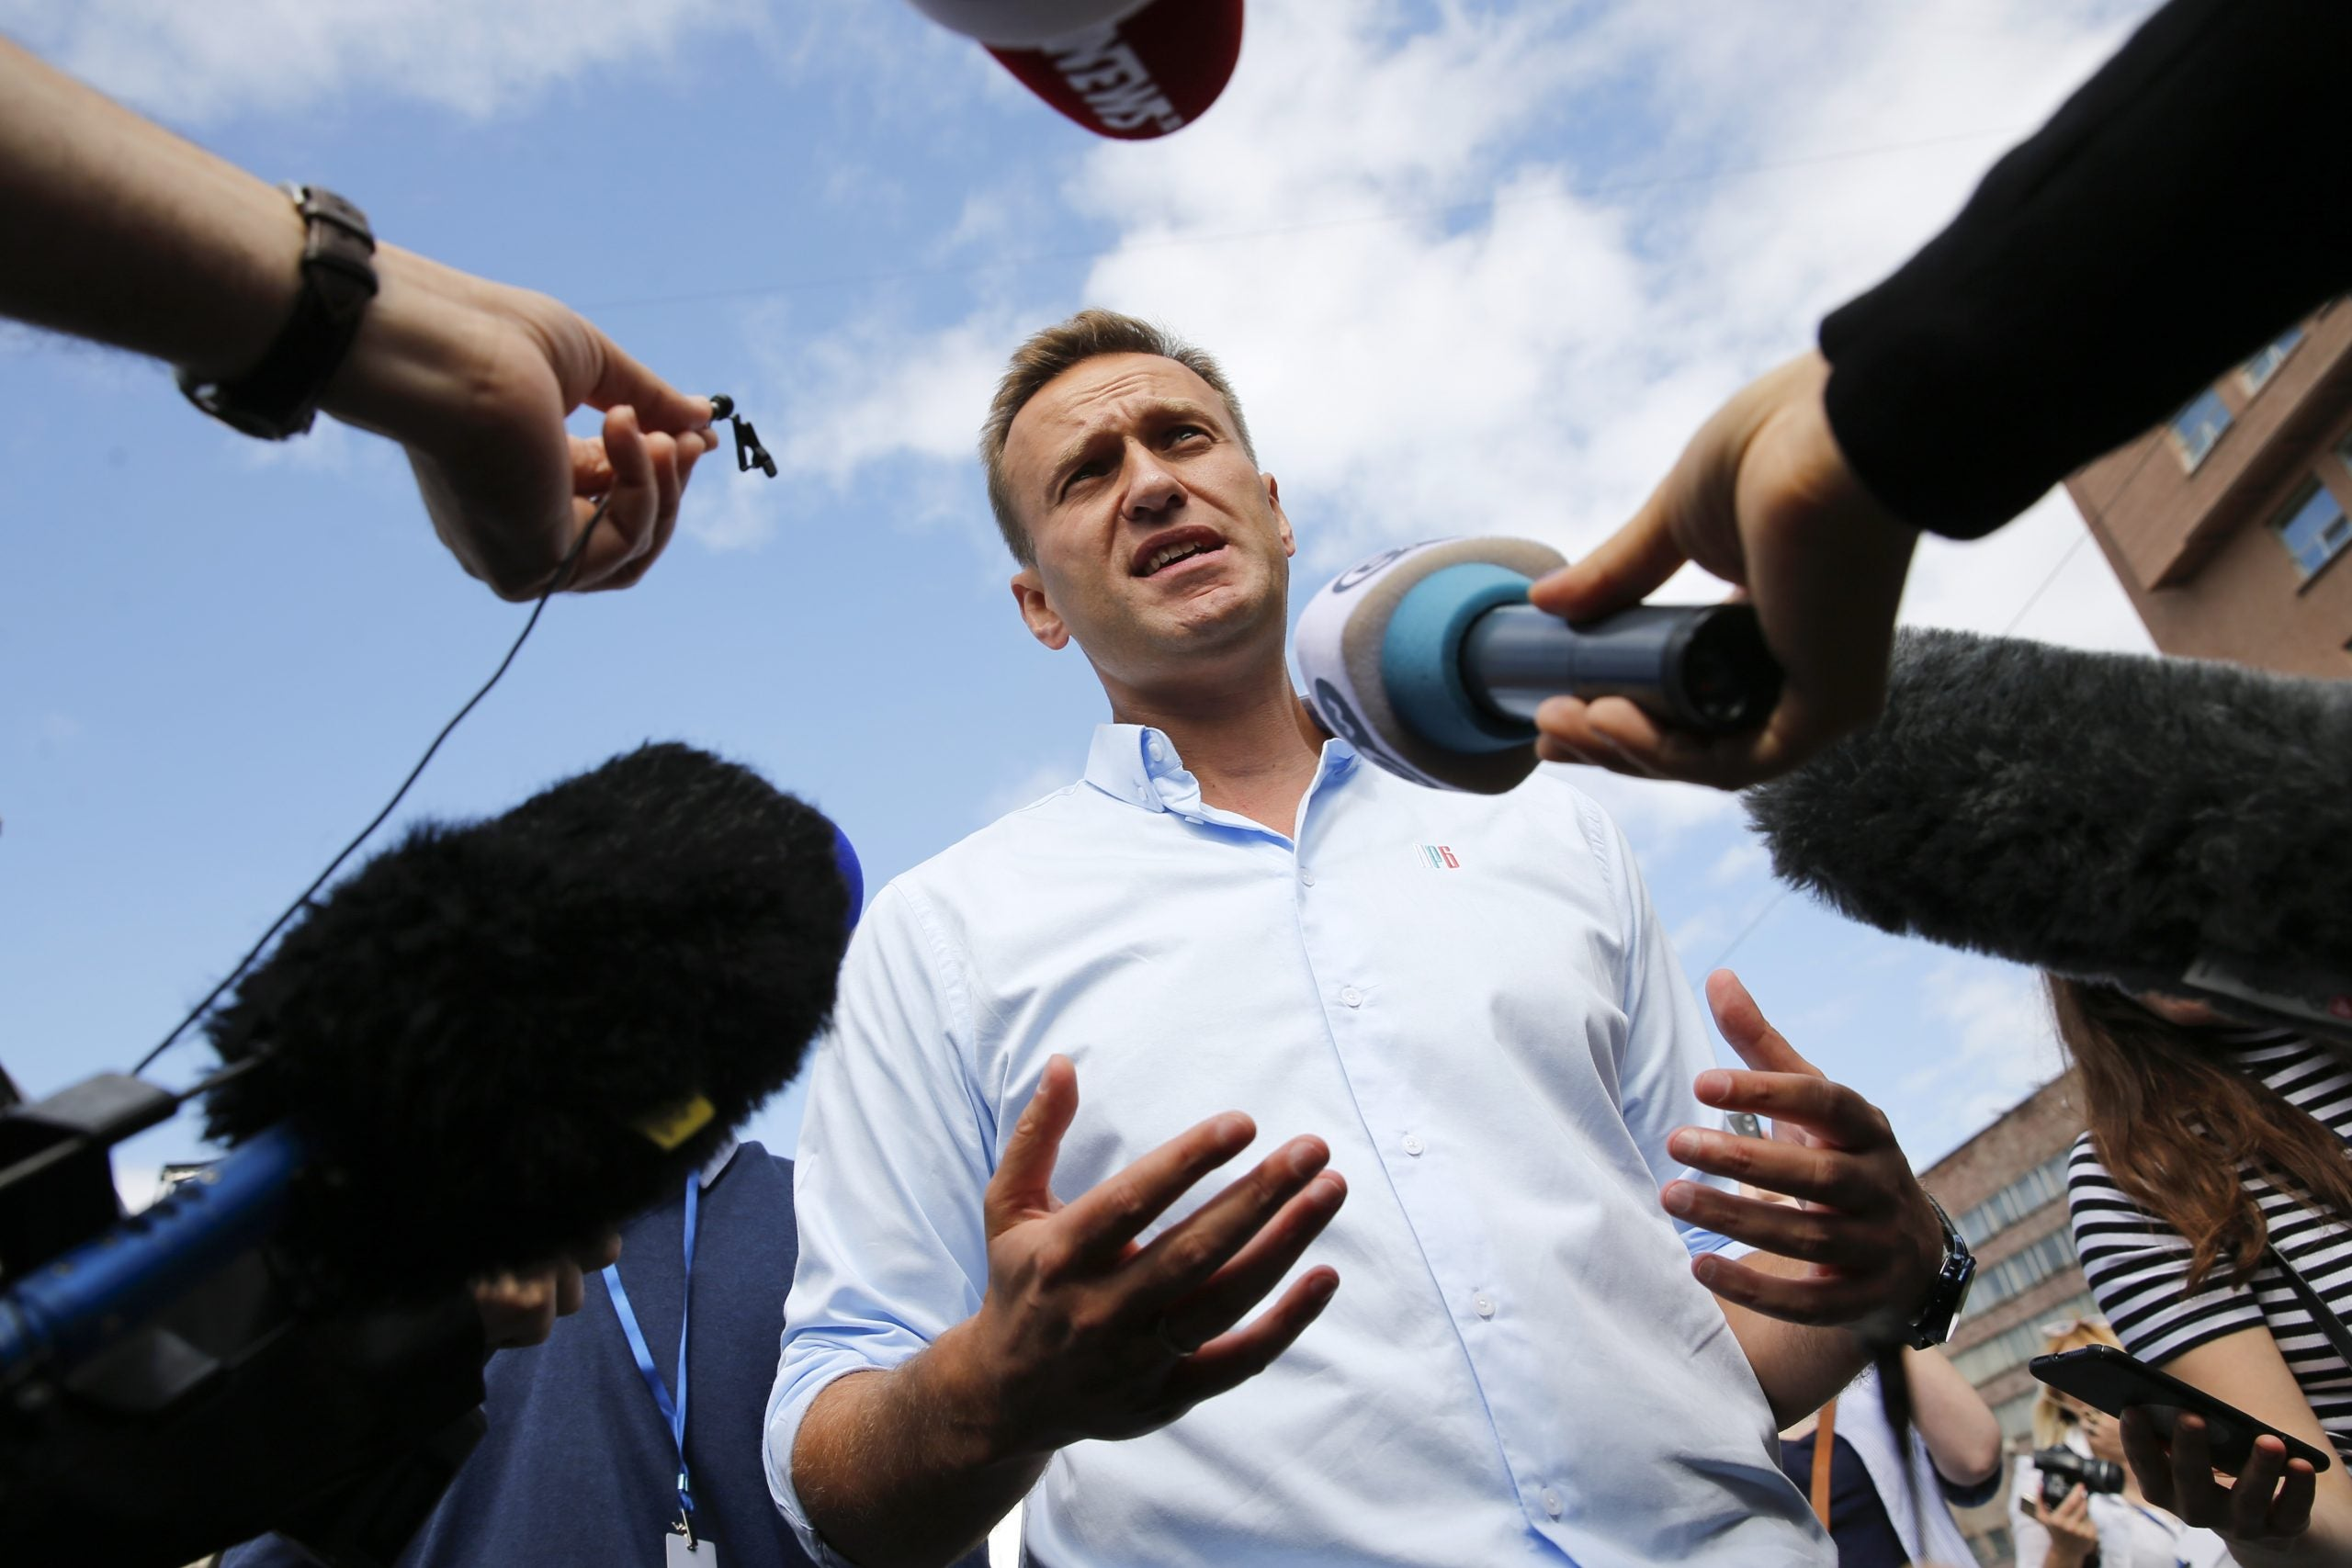 The persecution of Alexei Navalny reveals the weaknesses of Putin's Russia